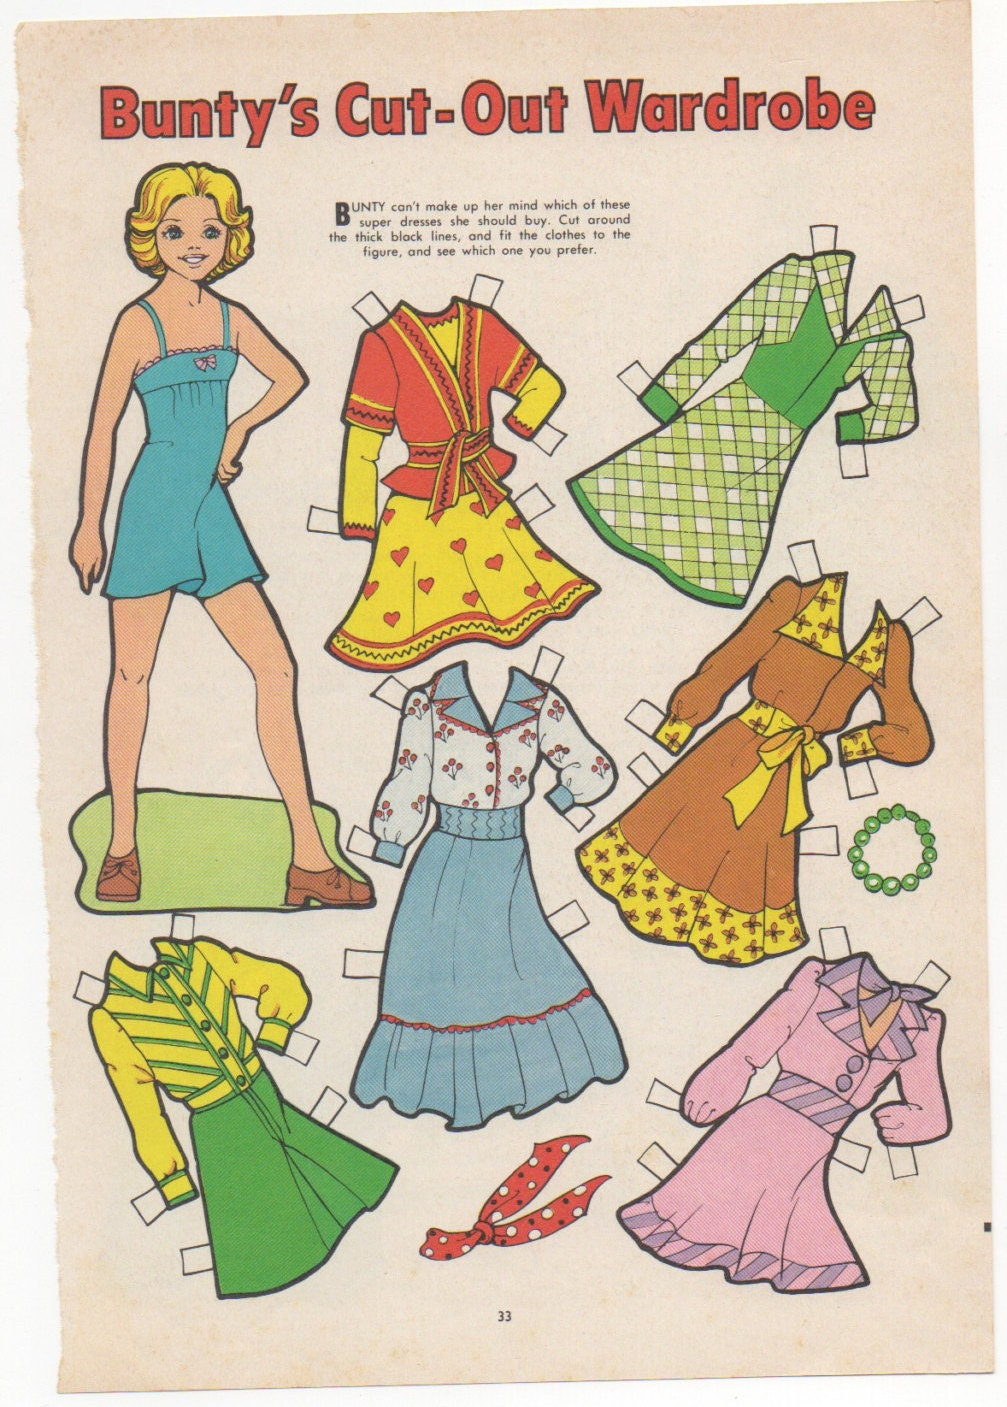 paper doll cut out The barack and michelle obama: paper doll and cut-out book (paper dolls) 2 nov 2009 by john boswell and randy jones paperback £479 (13 used & new offers) 5 out of 5 stars 2 queen elizabeth i: paper dolls to cut out and color 1 feb 1988 by bellerophon books paperback £383 prime.